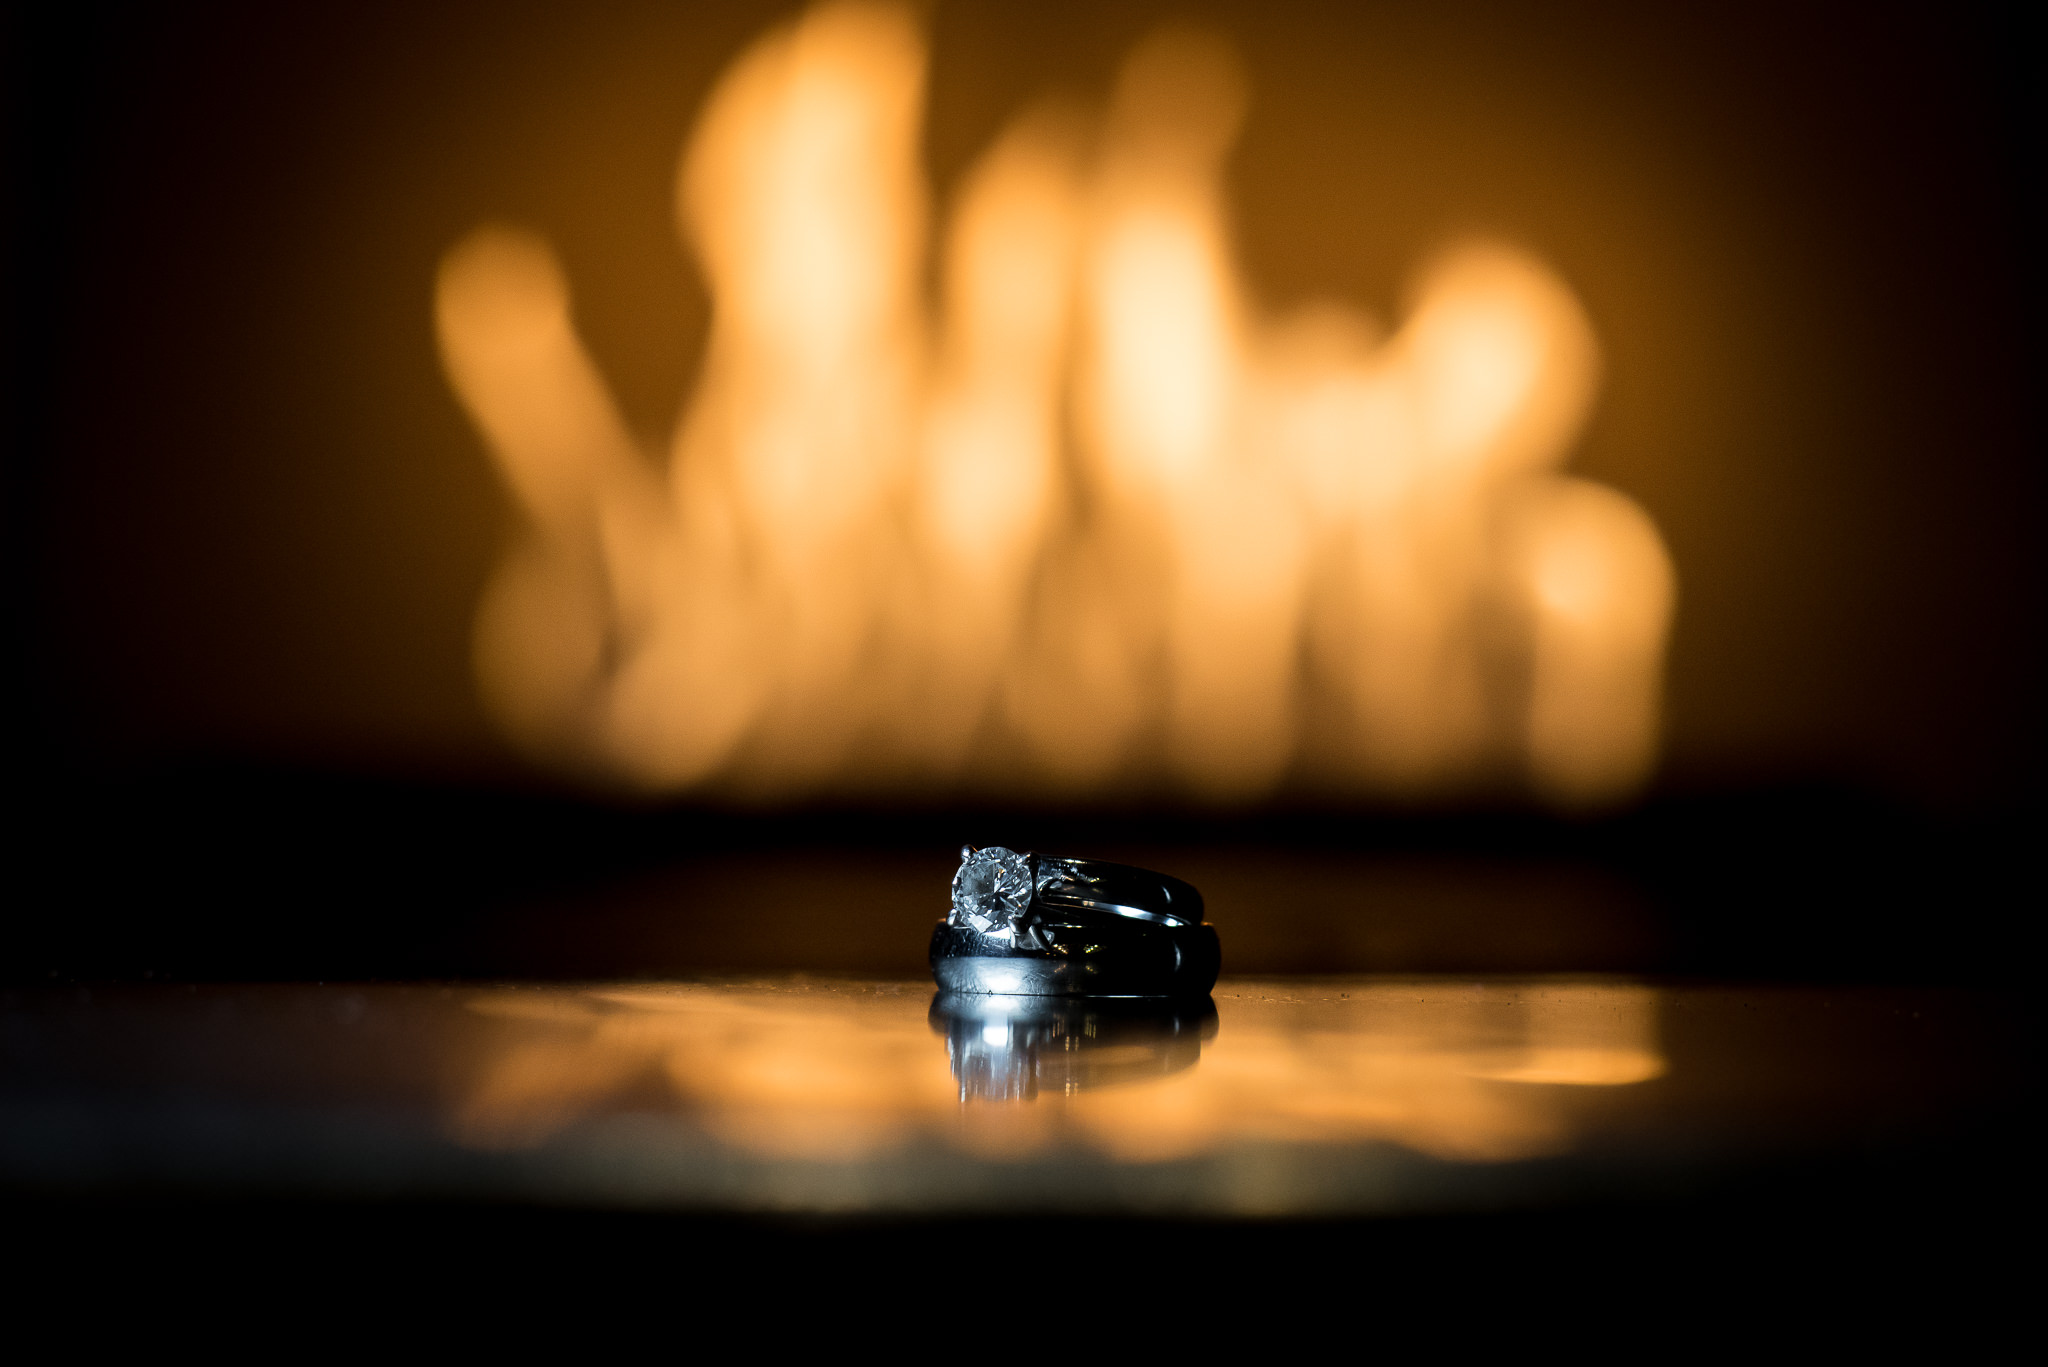 Ring shot captured with NEEWER LED Panel handheld camera left and extension tube. Rings are in a pizza oven. I like to think outside the box :p Disclaimer: No rings were harmed taking this photo.